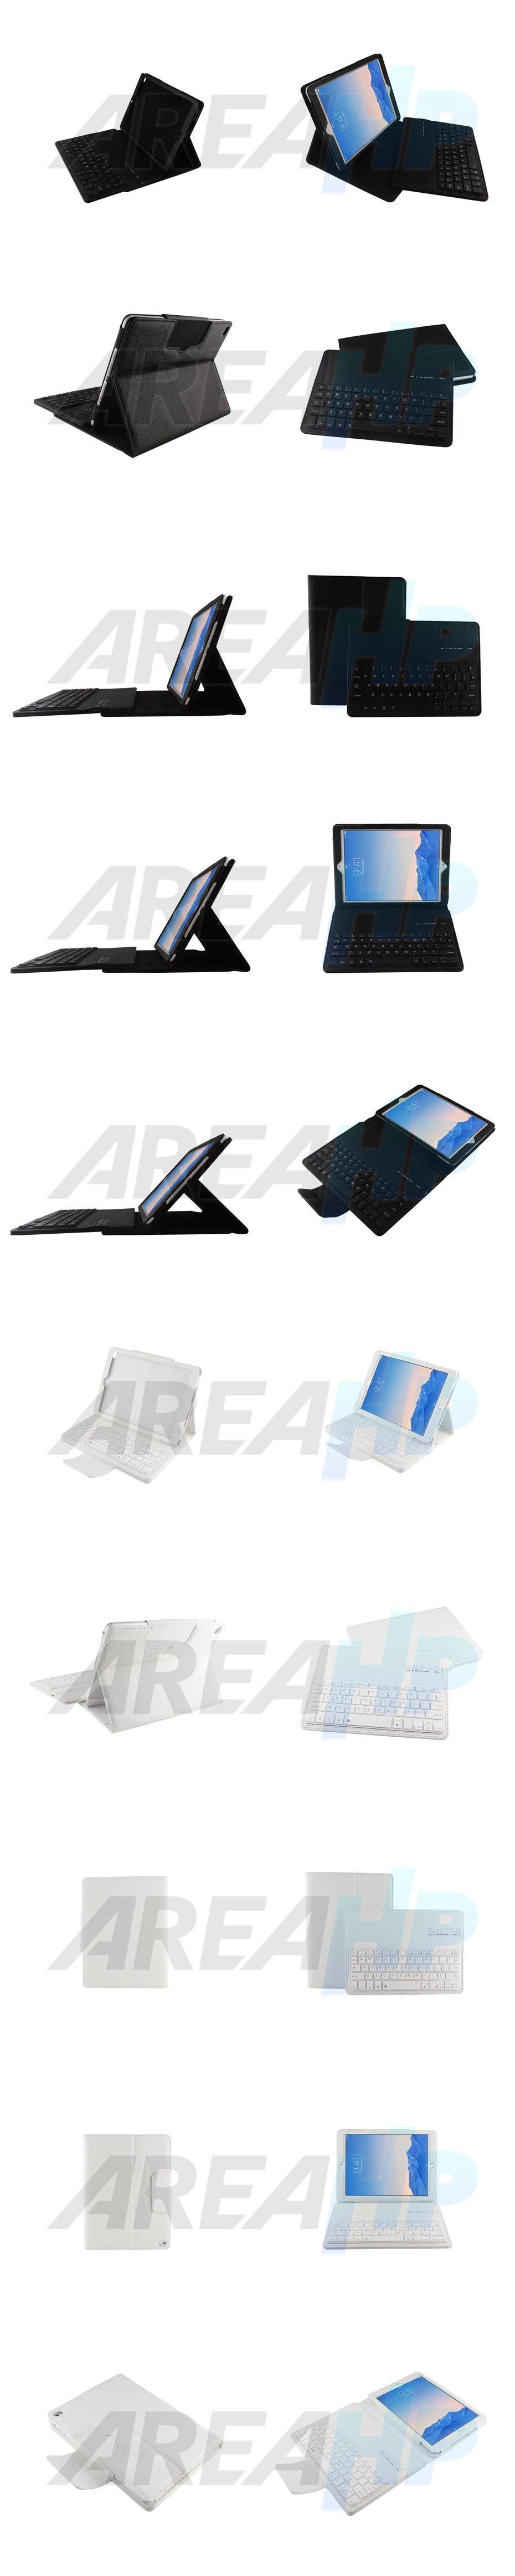 Removable Keyboard Leather Case for iPad Air Overview